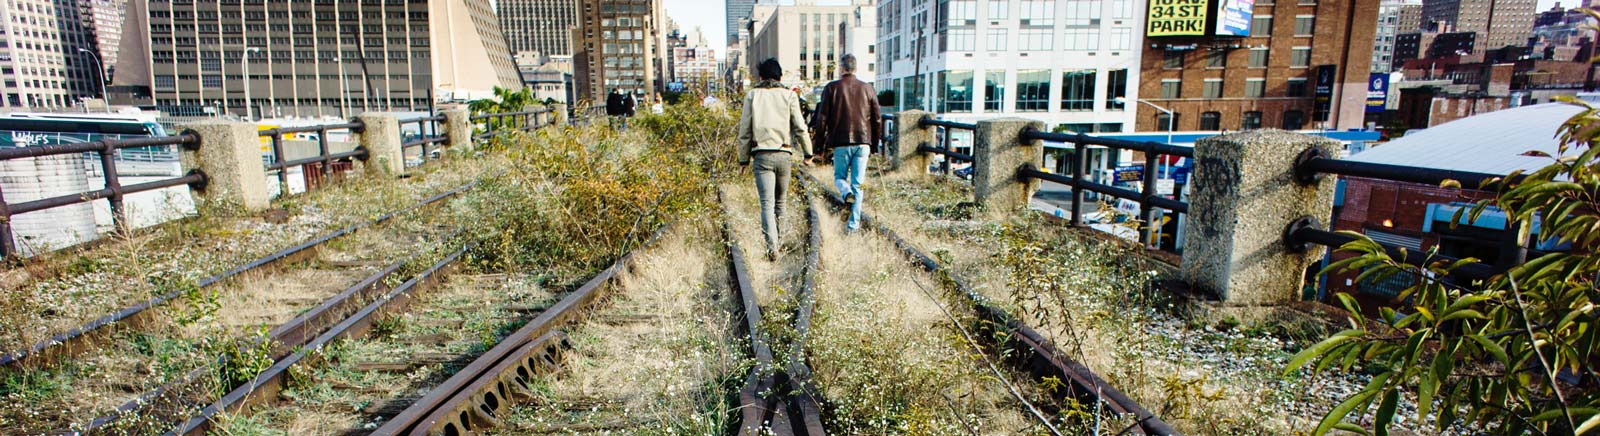 Walking the unfinished third section of the High Line Park, New York